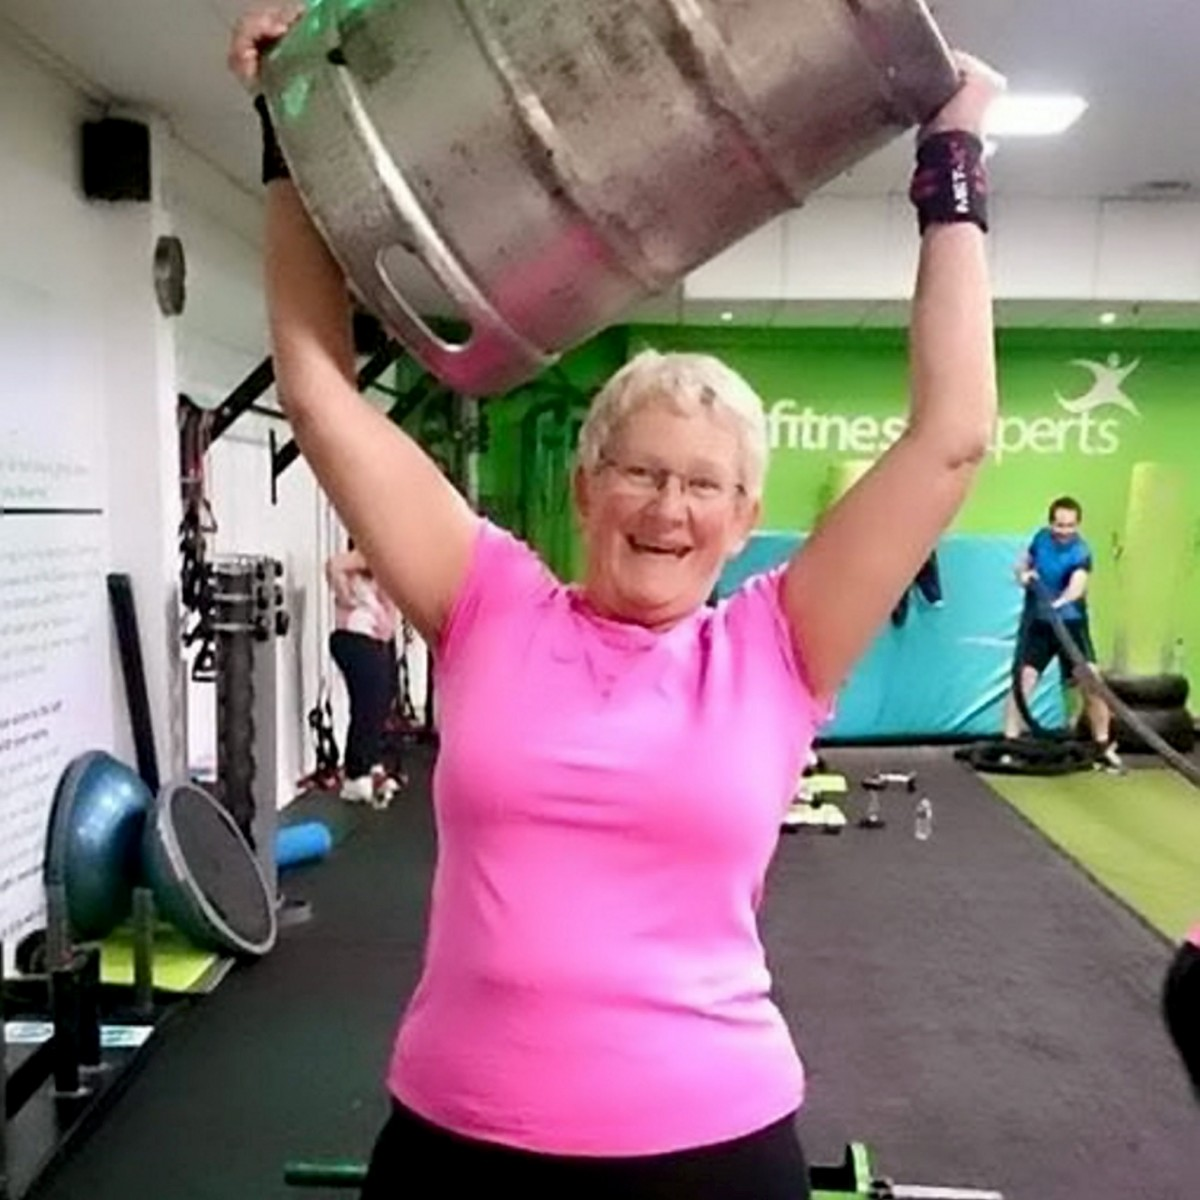 'I'm the oldest in the gym!' Proof it's never too late to get into shape